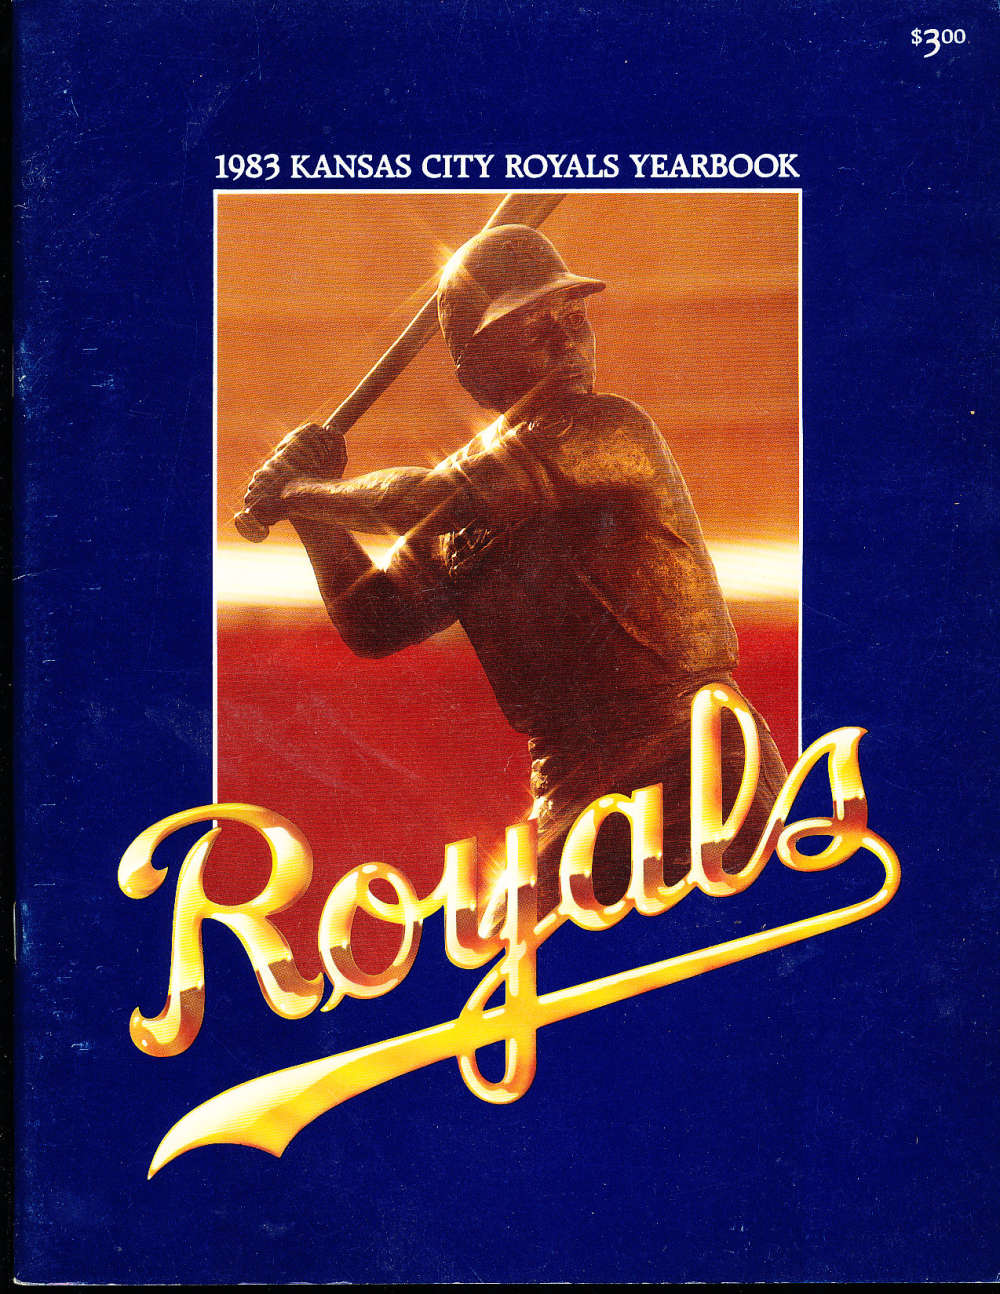 1983 Kansas city Royals baseball yearbook